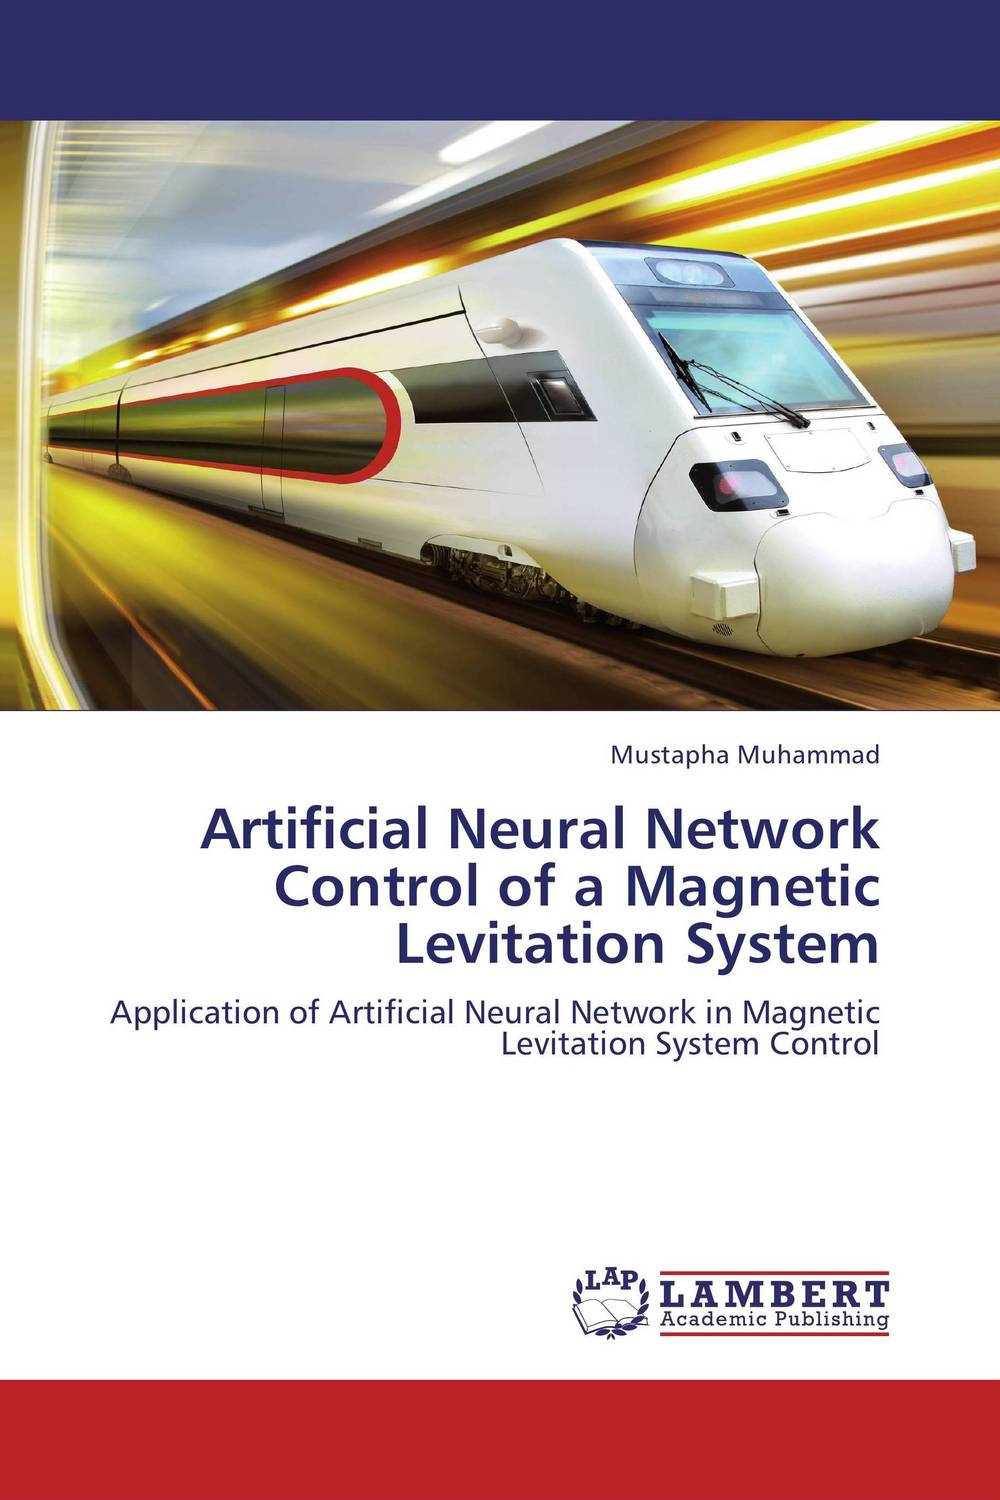 Artificial Neural Network Control of a Magnetic Levitation System amandeep gill manbir kaur and nirbhowjap singh speed control of brushless dc motor by neural network pid controller